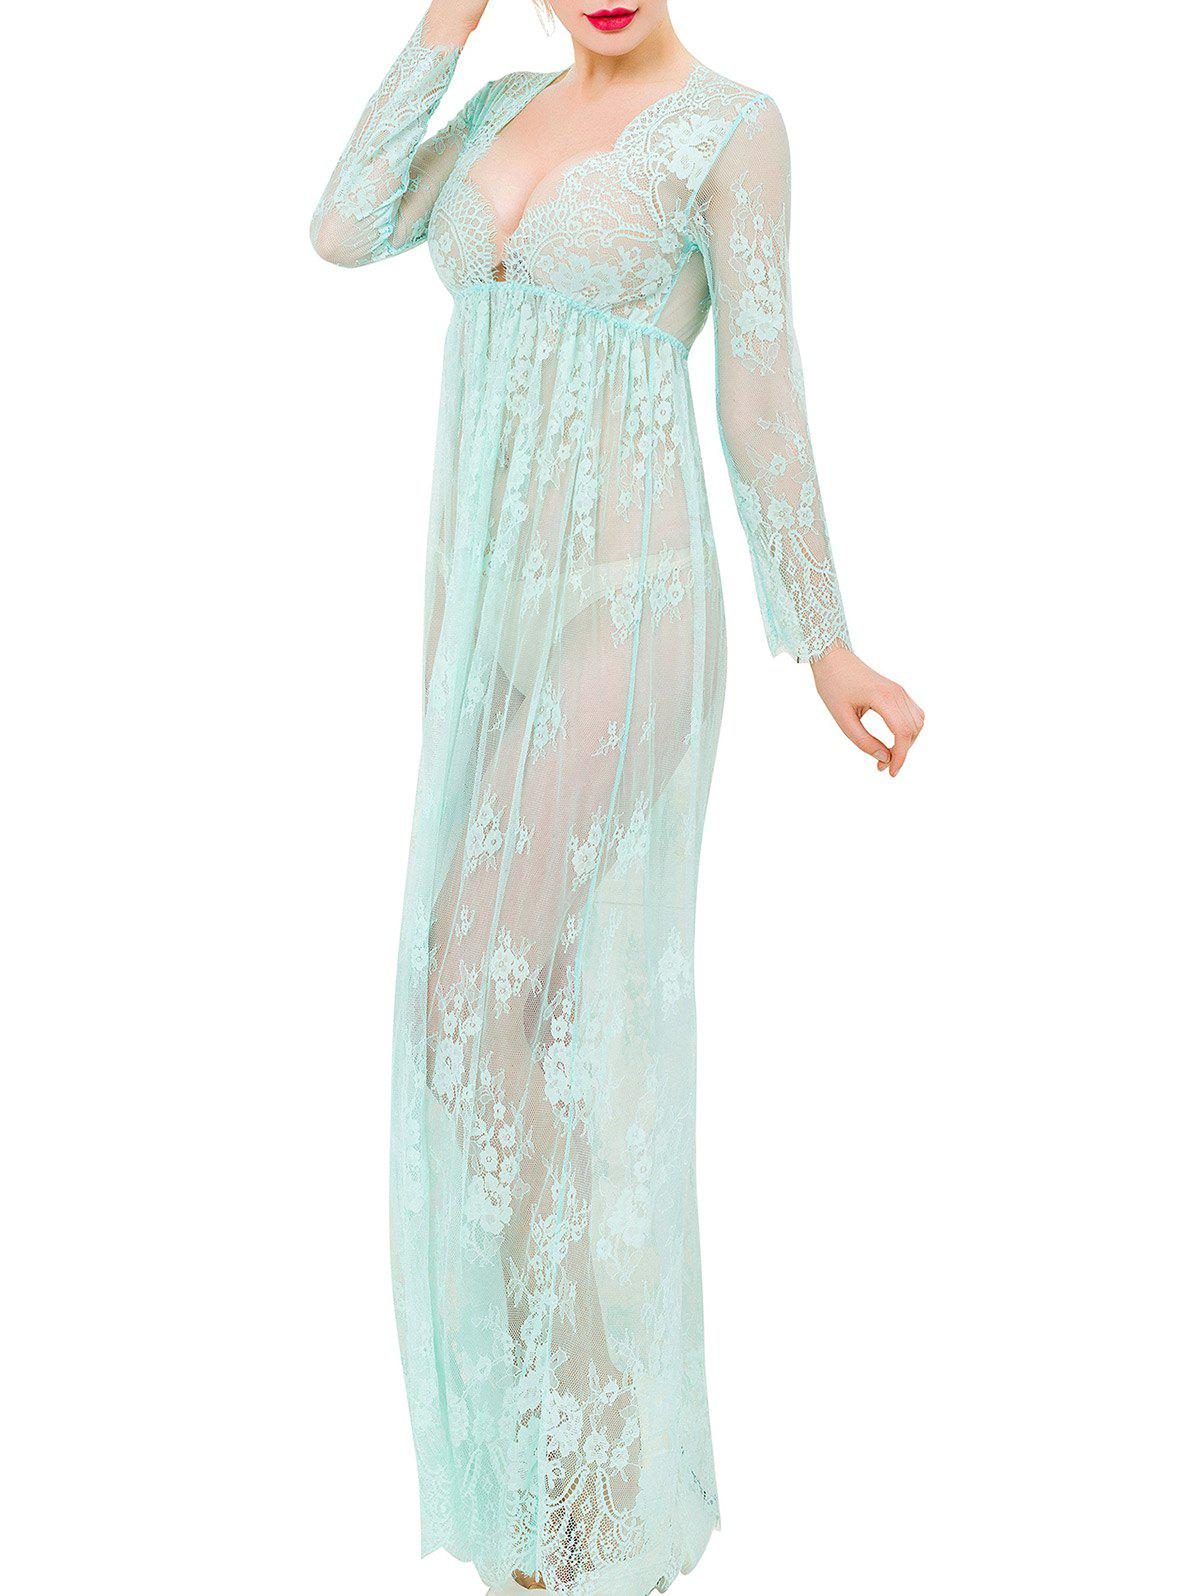 Low Cut Lace Sheer Long Babydoll - LIGHT GREEN M